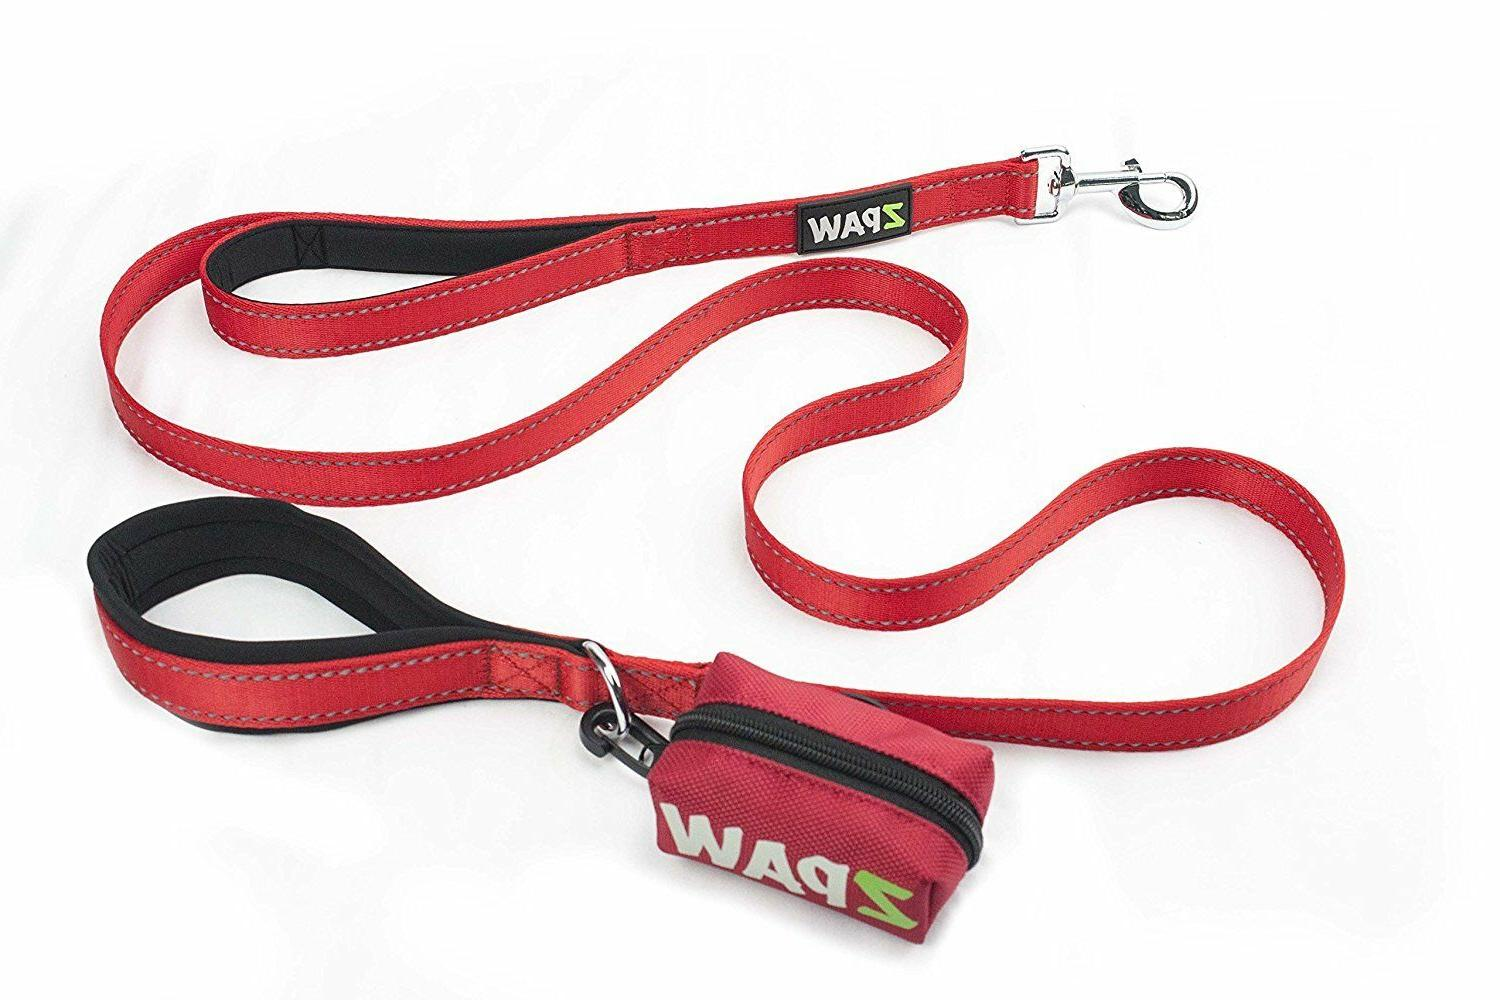 Dog Leash 4ft Long Heavy Duty Nylon Double Padded Handle RED